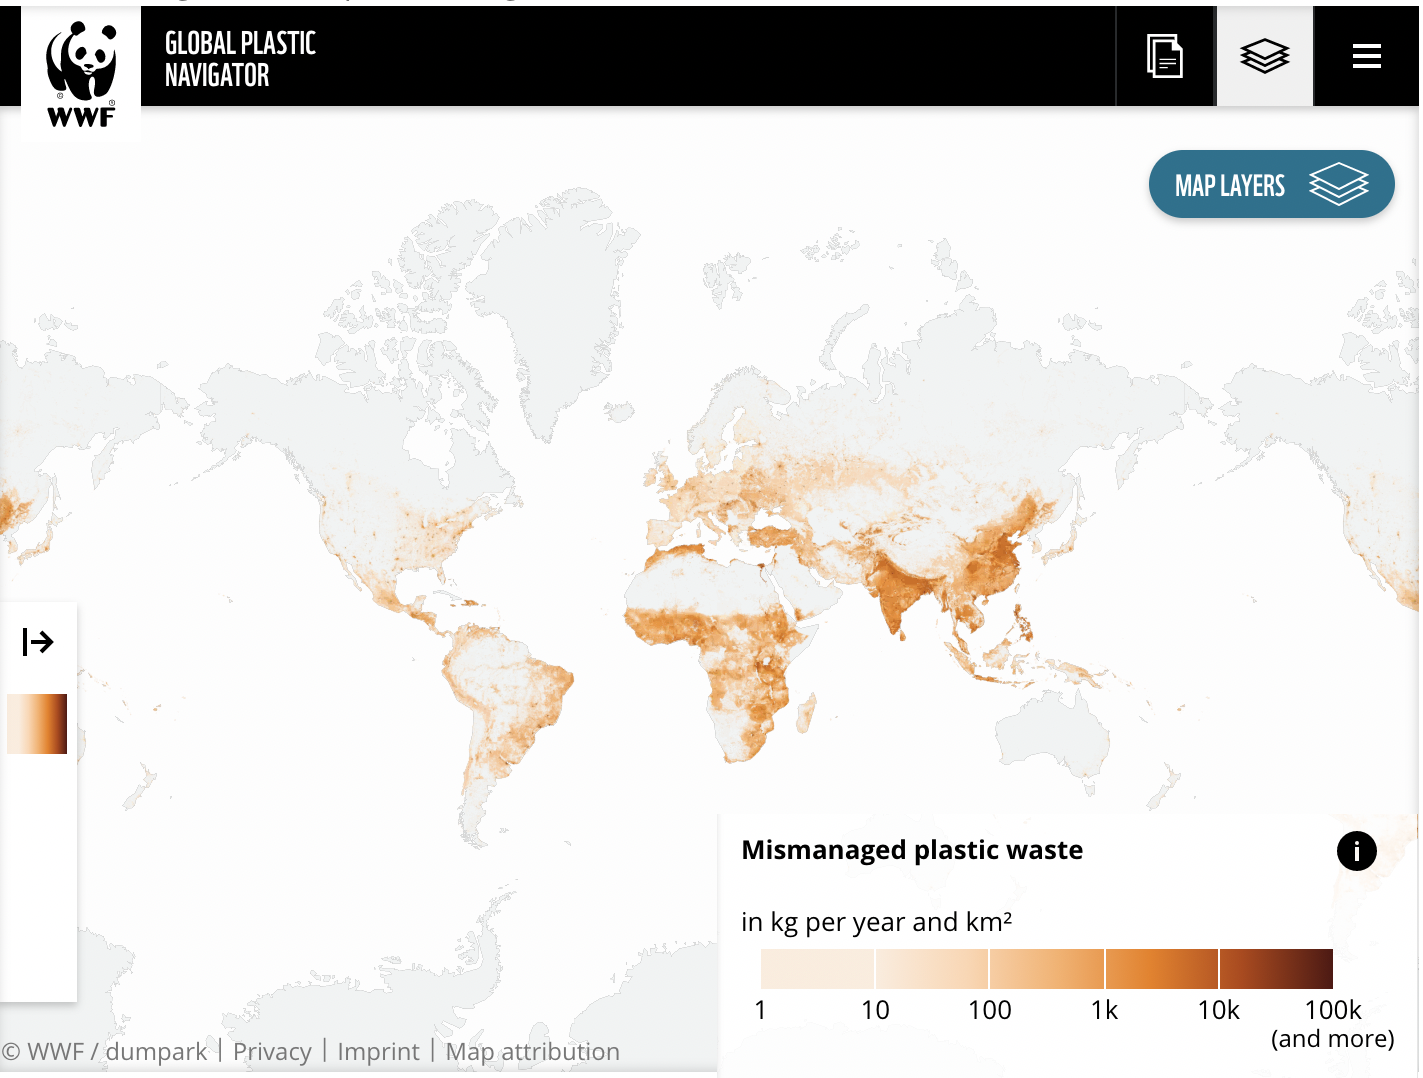 Mismanaged plastic waste around the world, an indication of the need for effective waste management programs